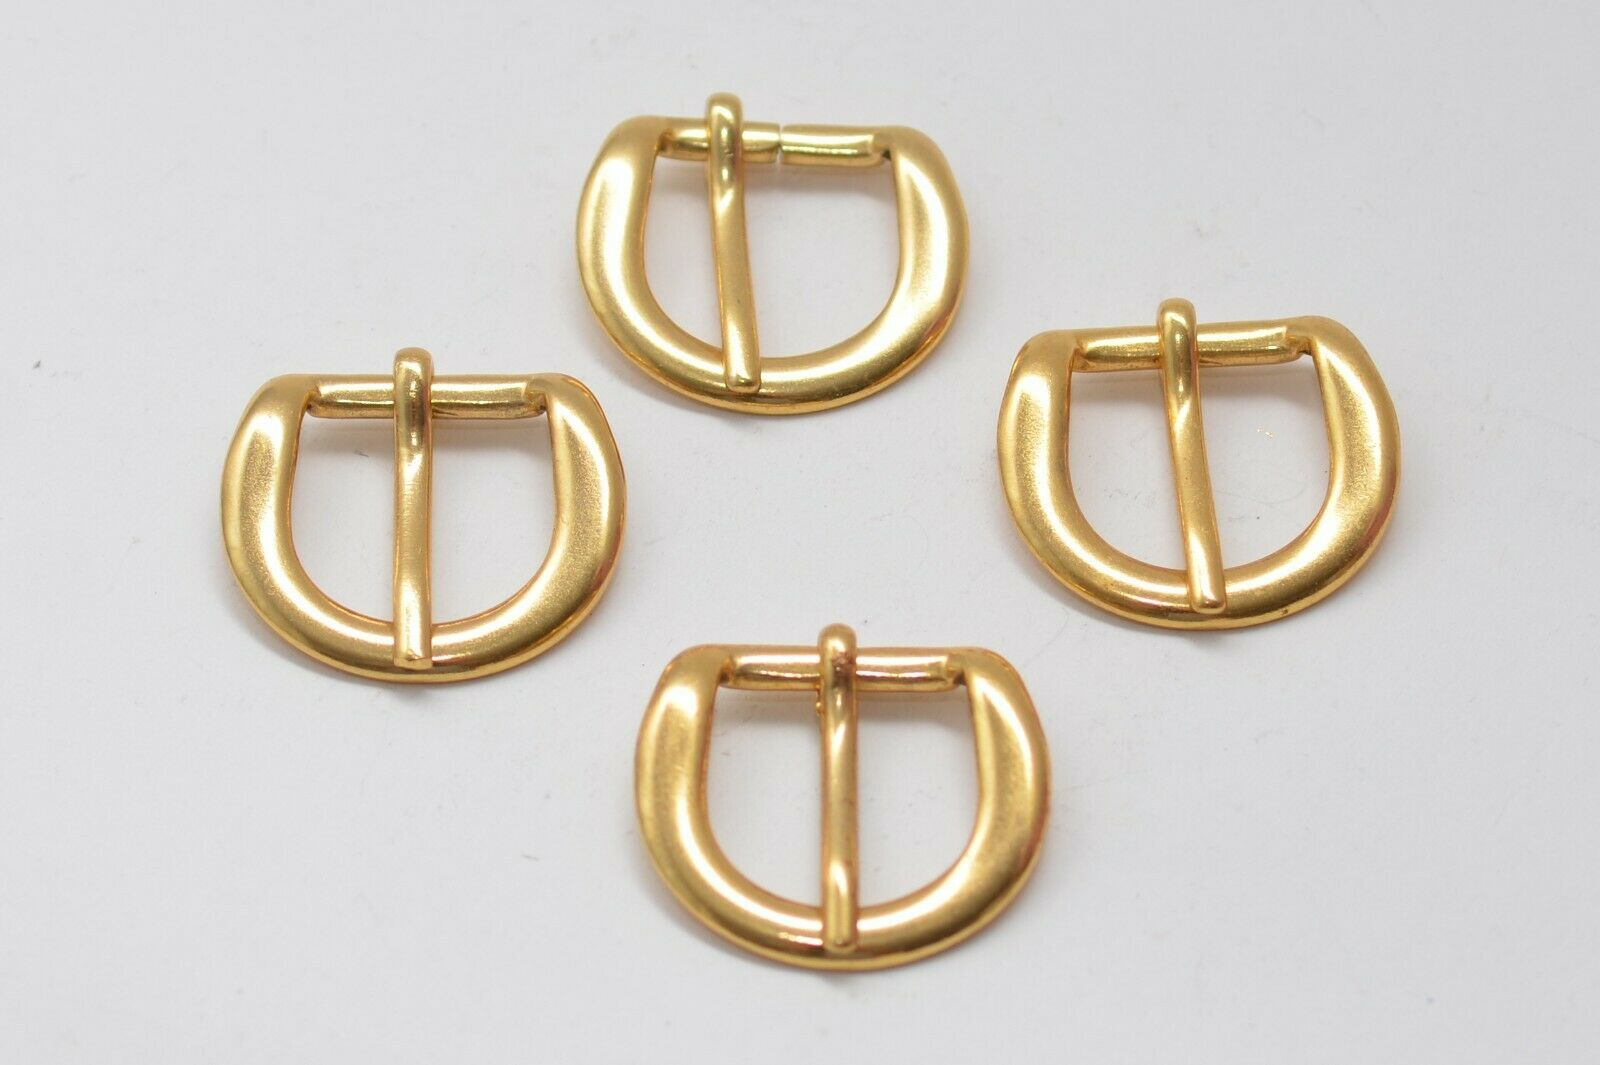 4x Massive Belt Buckle Clasp Buckle, Approx. 20 MM Width, Gold, 80er Years